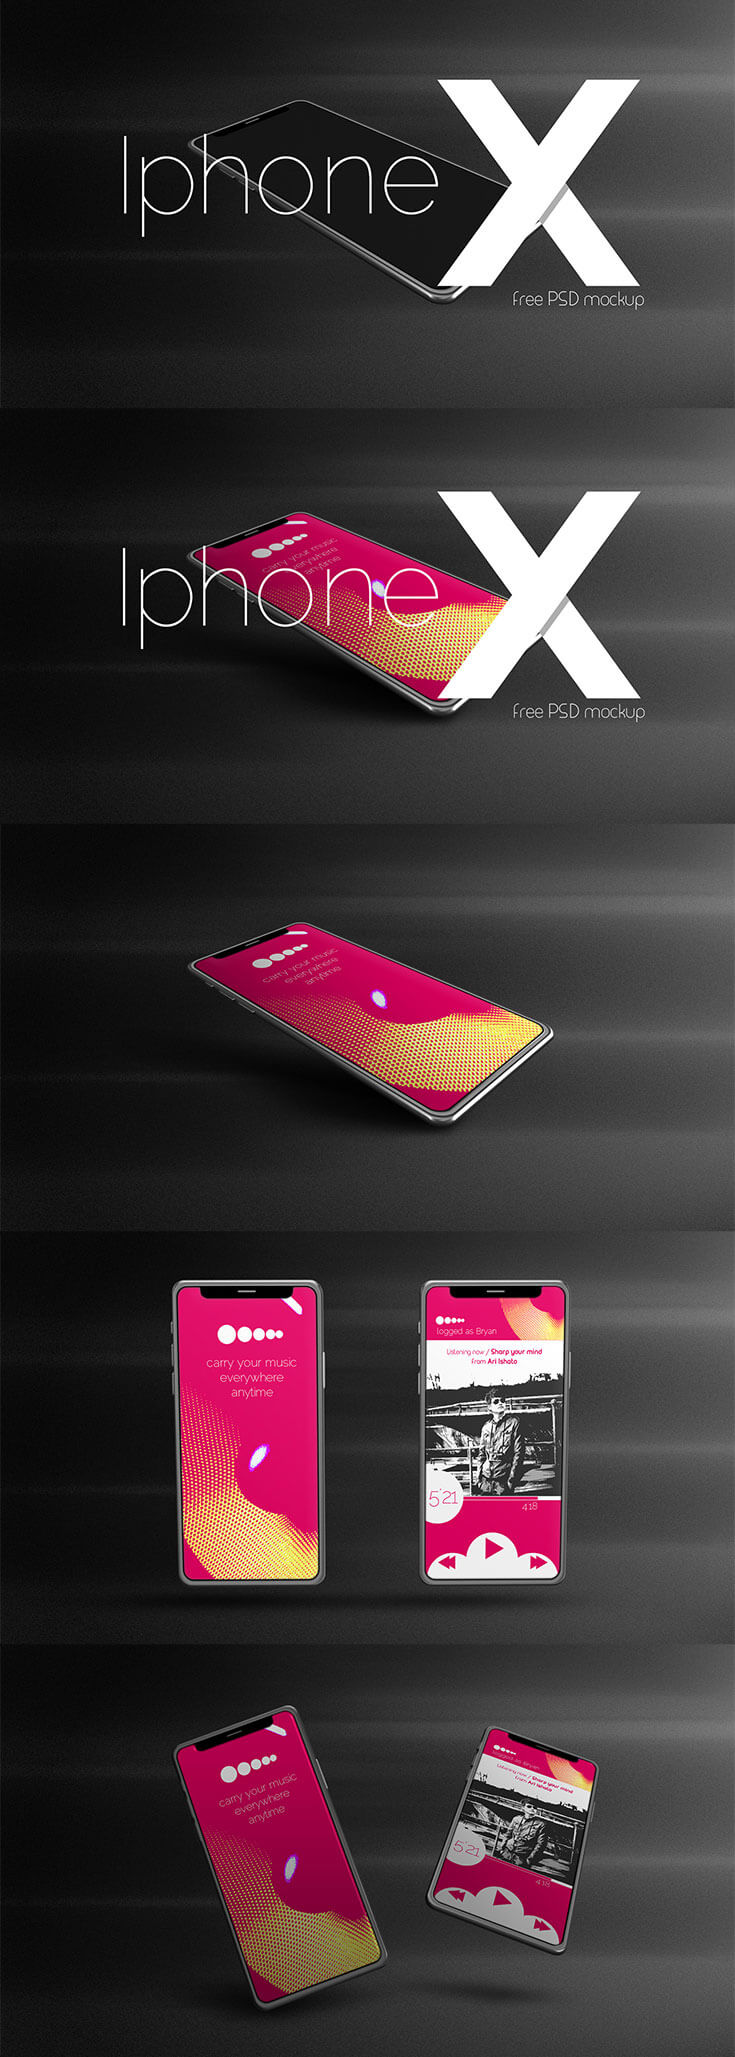 Free Iphone X PSD Mockupis abeautiful mockup editable mockup. It comes in PSD format with built-in smart object for easier use. You can showcase to promote your designs to app, magazine, website, your firm, clients using, or any project you might have.